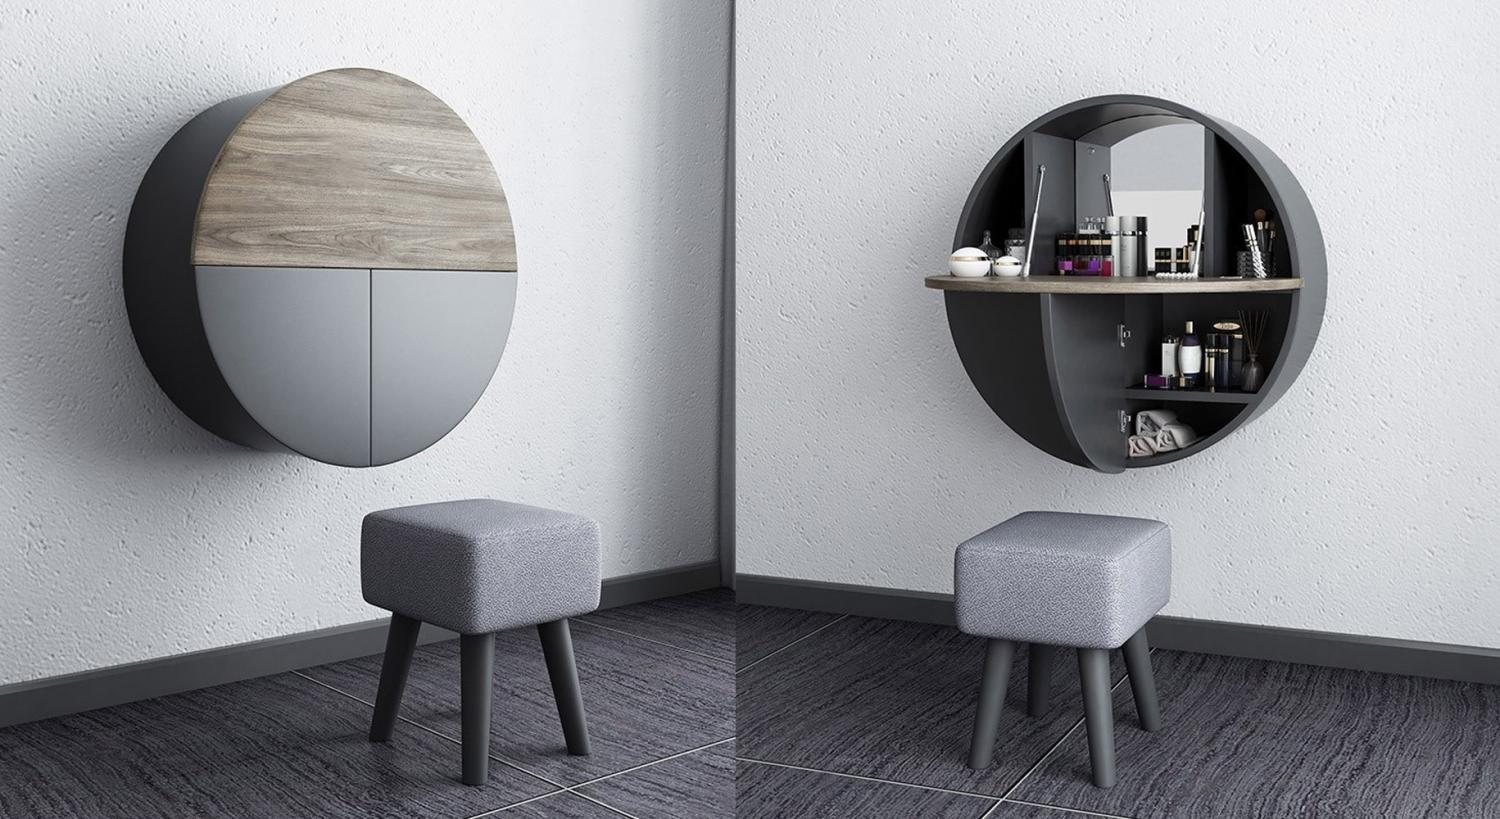 The Ultimate Hideaway Makeup Vanity - Wooden makeup vanity with hidden mirror, chair, and storage